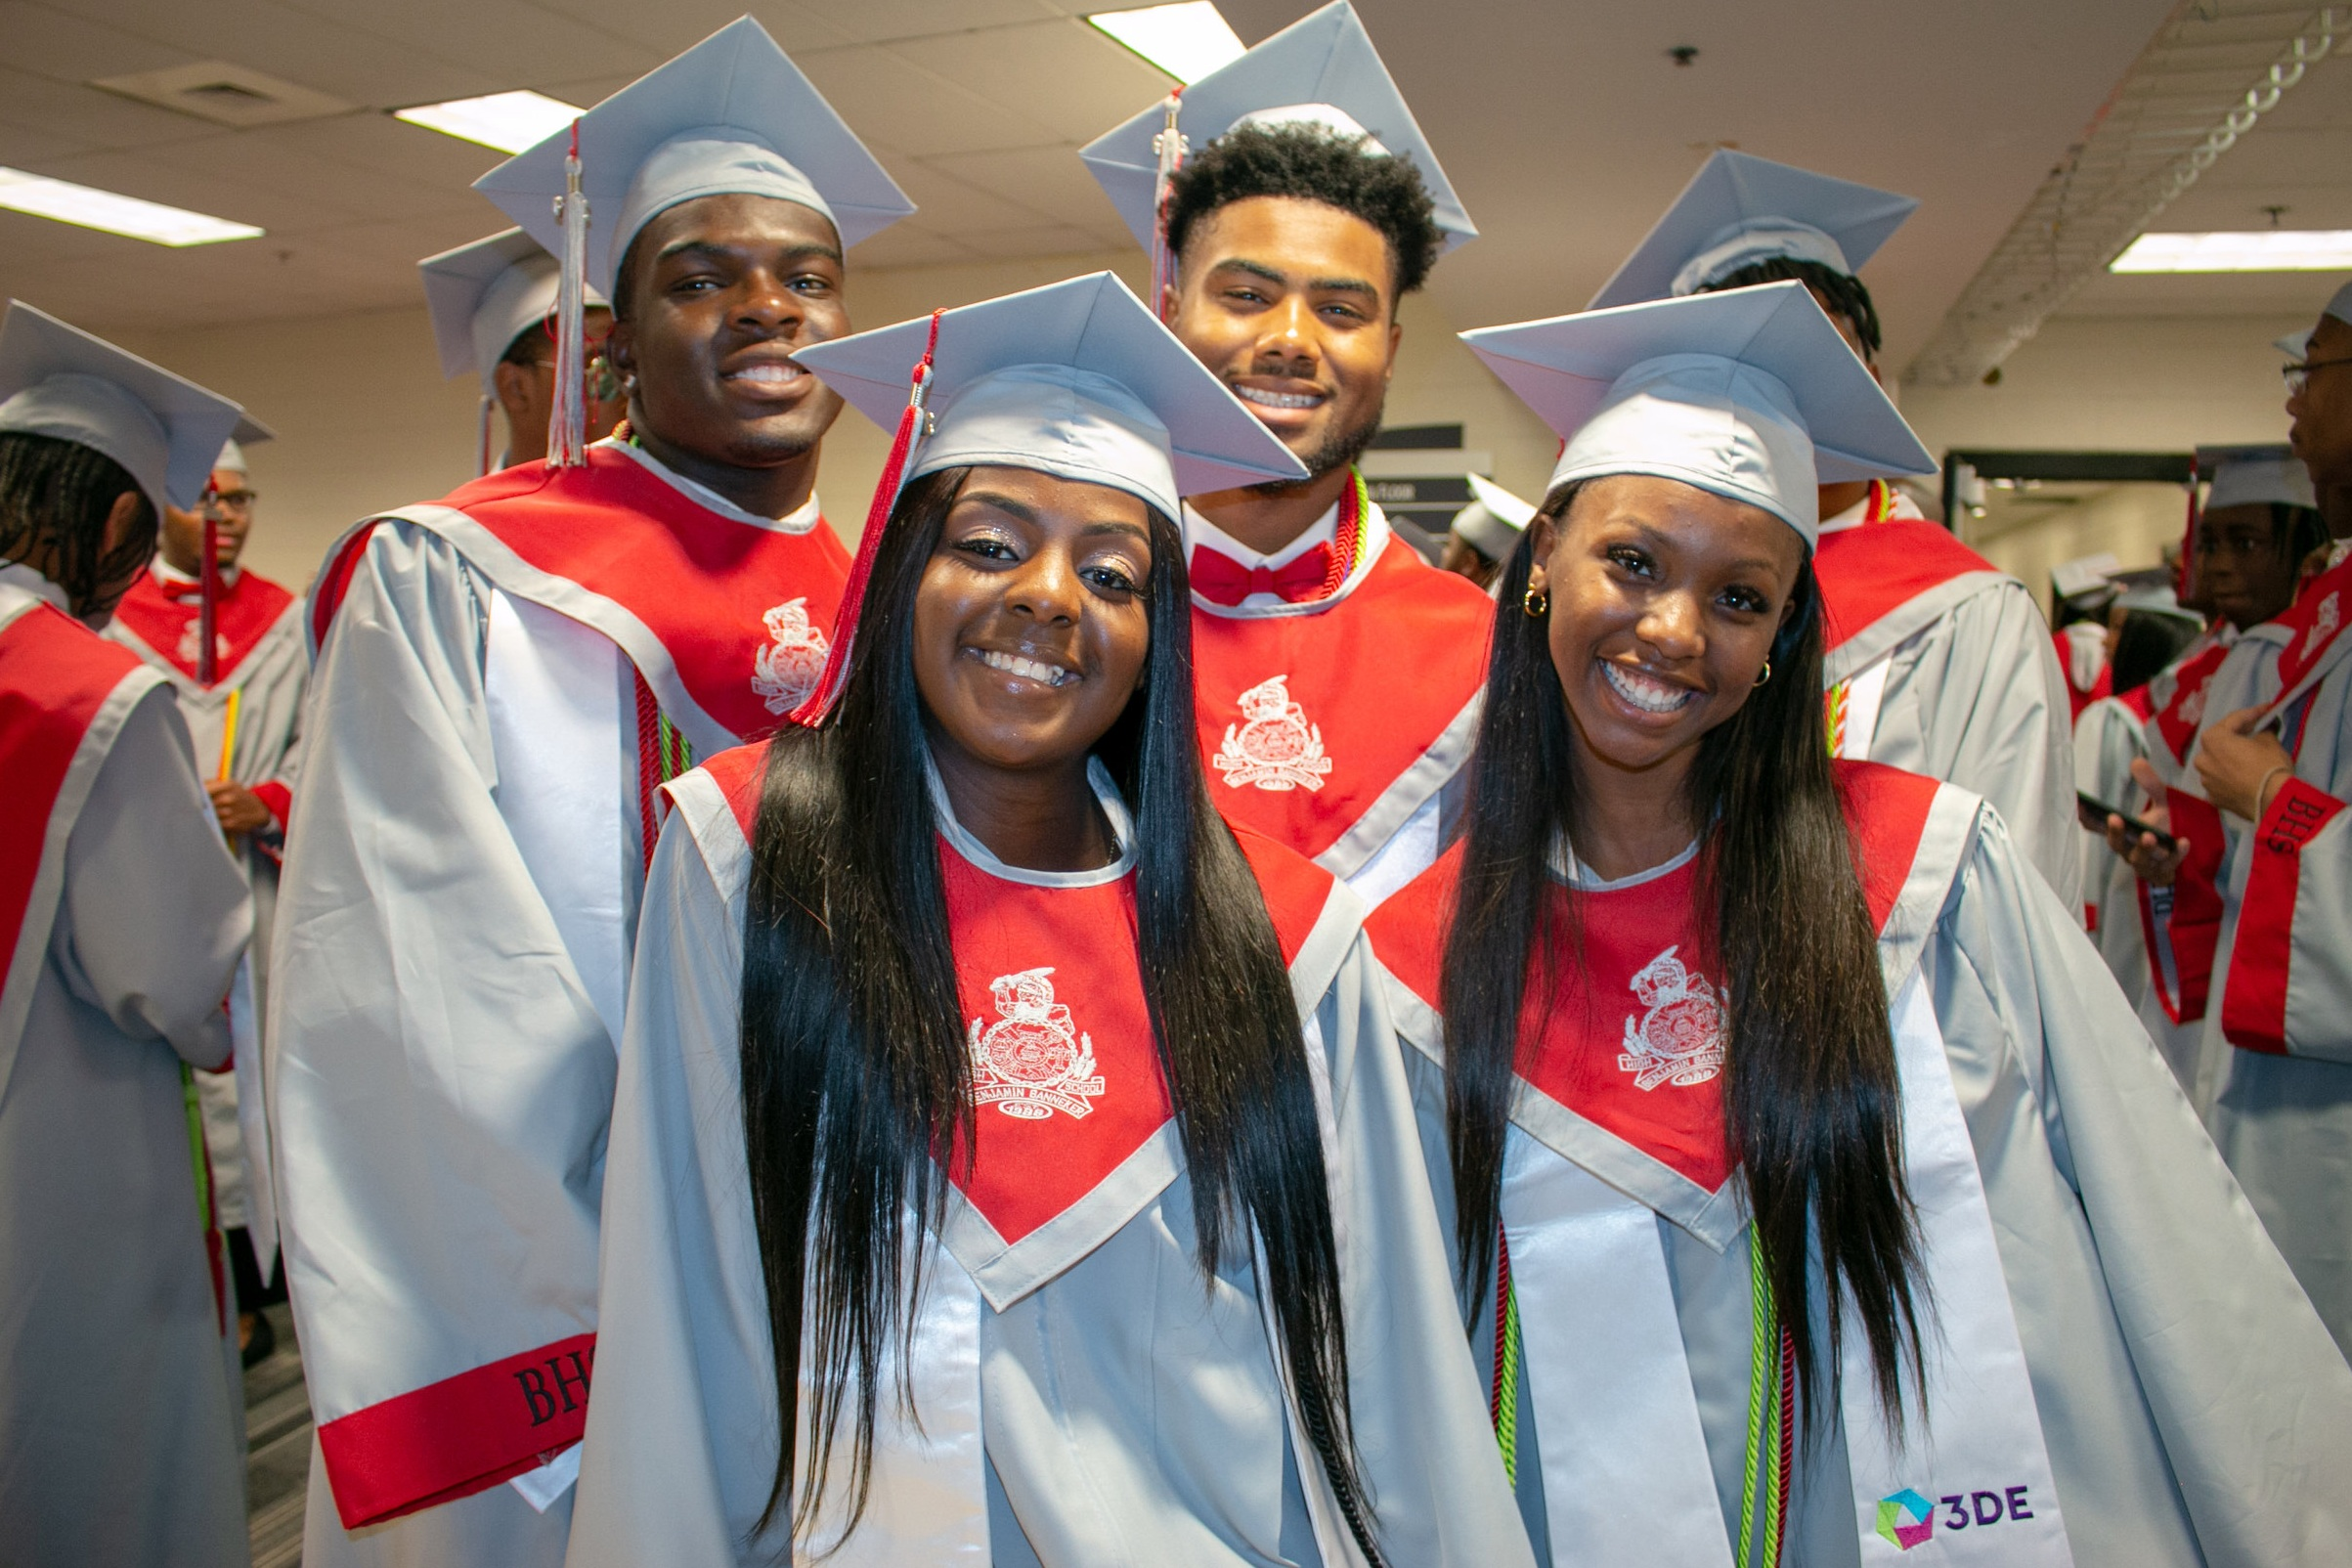 Graduates of the inaugural 3DE class at Banneker High School